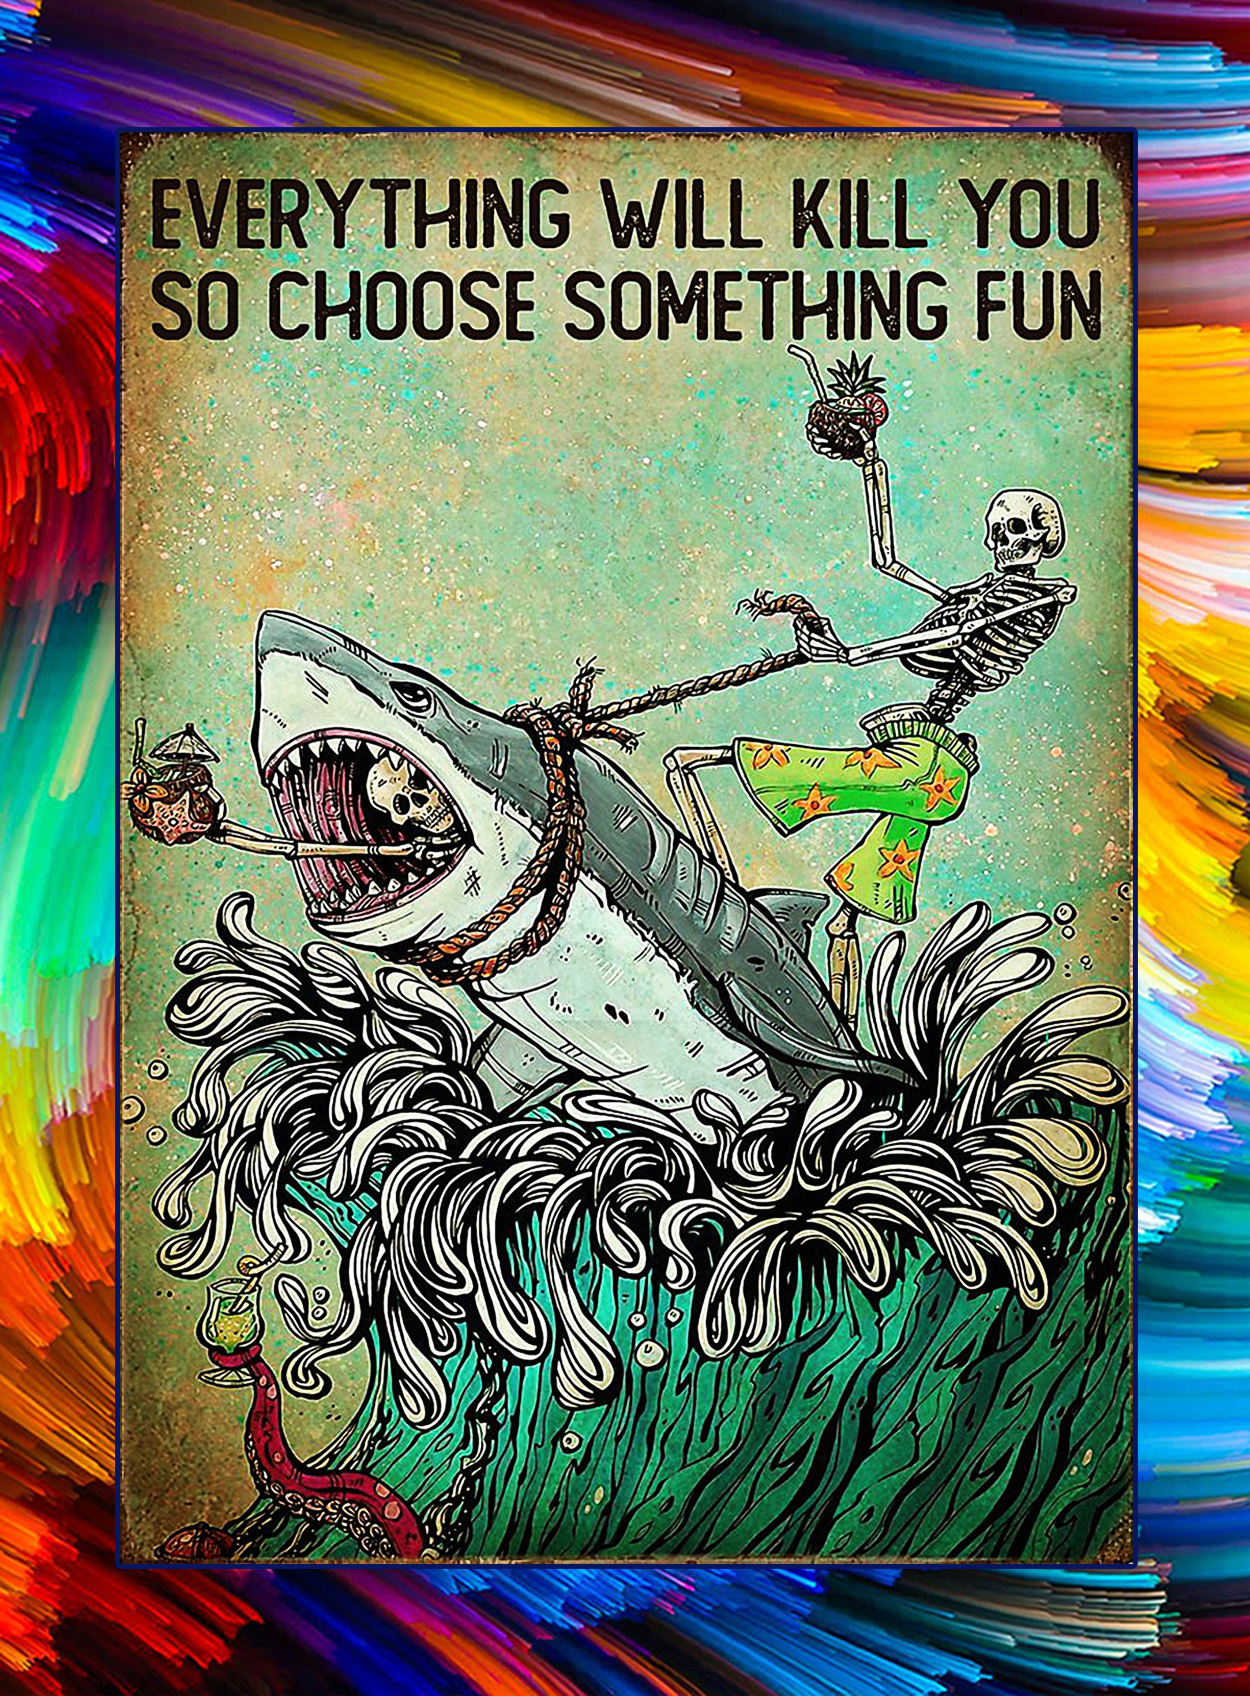 Skeleton shark everything will kill you so choose something fun poster - A2